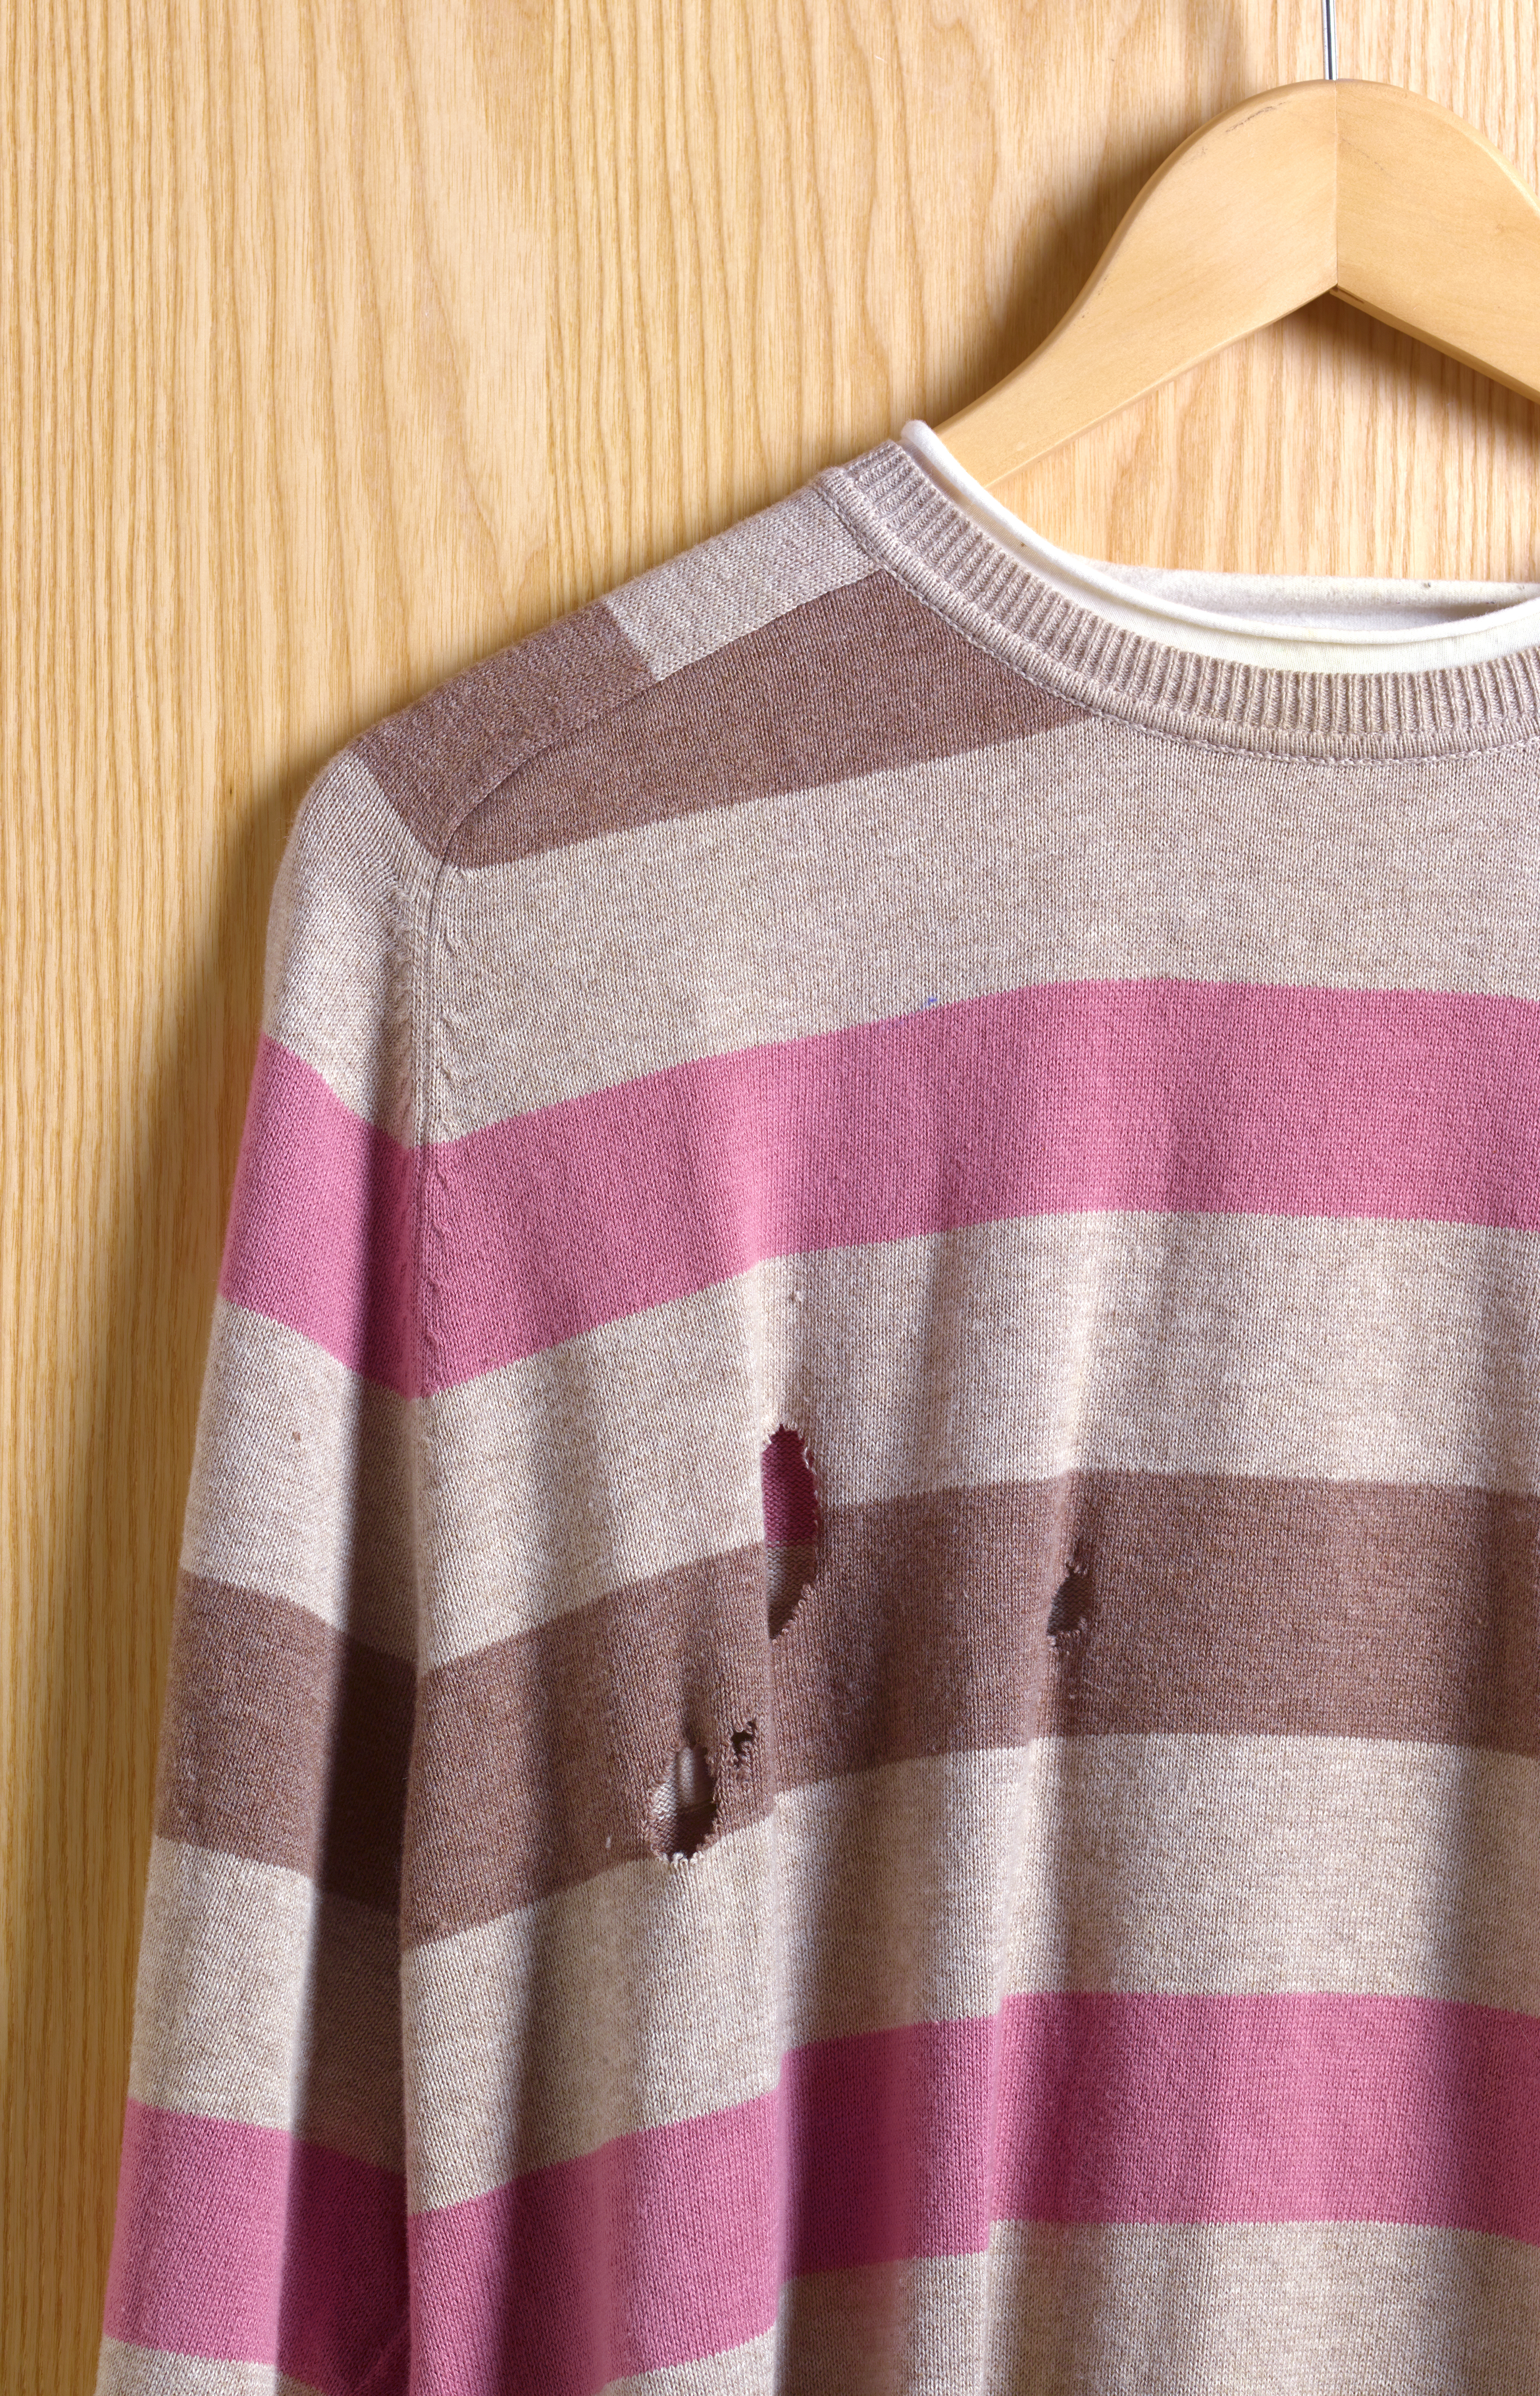 Sweater with Hole